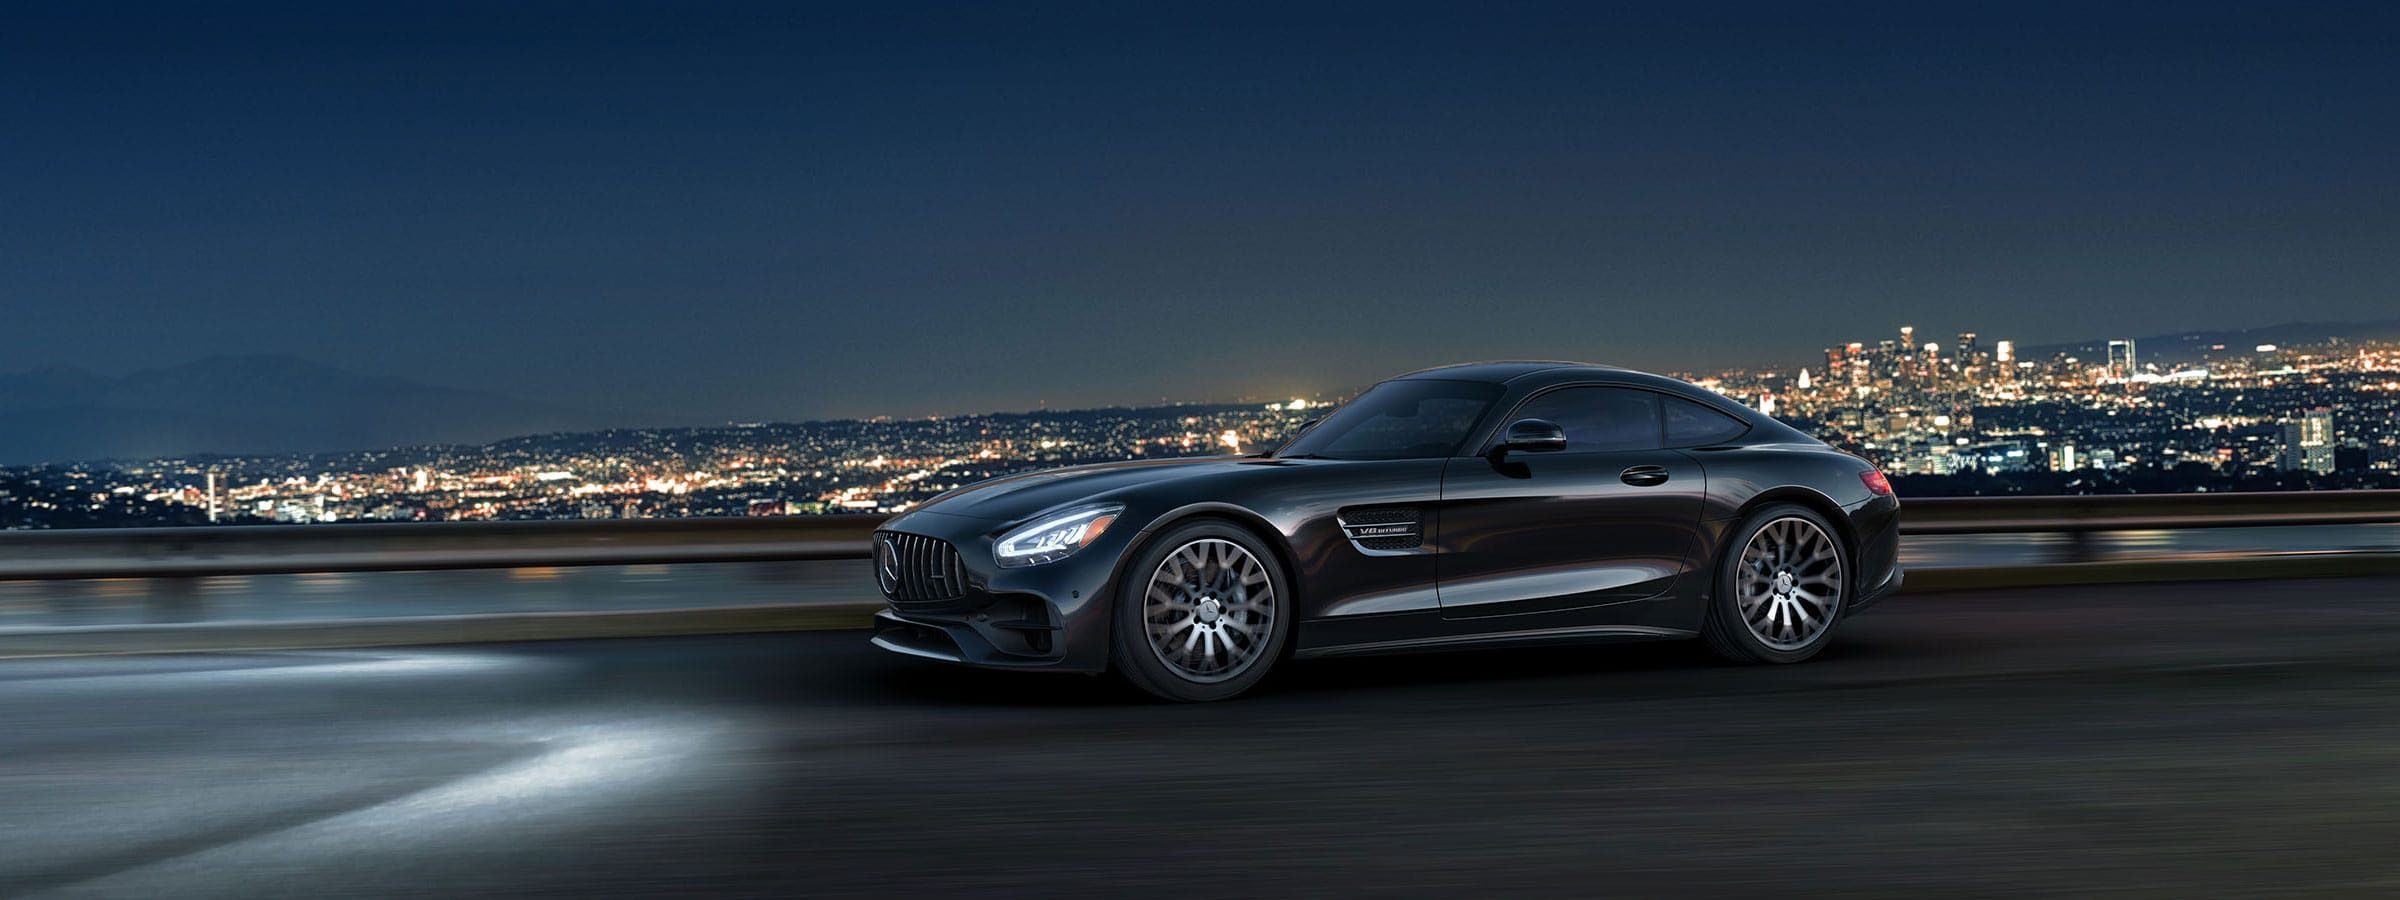 What Is The Difference Between Amg And Non Amg